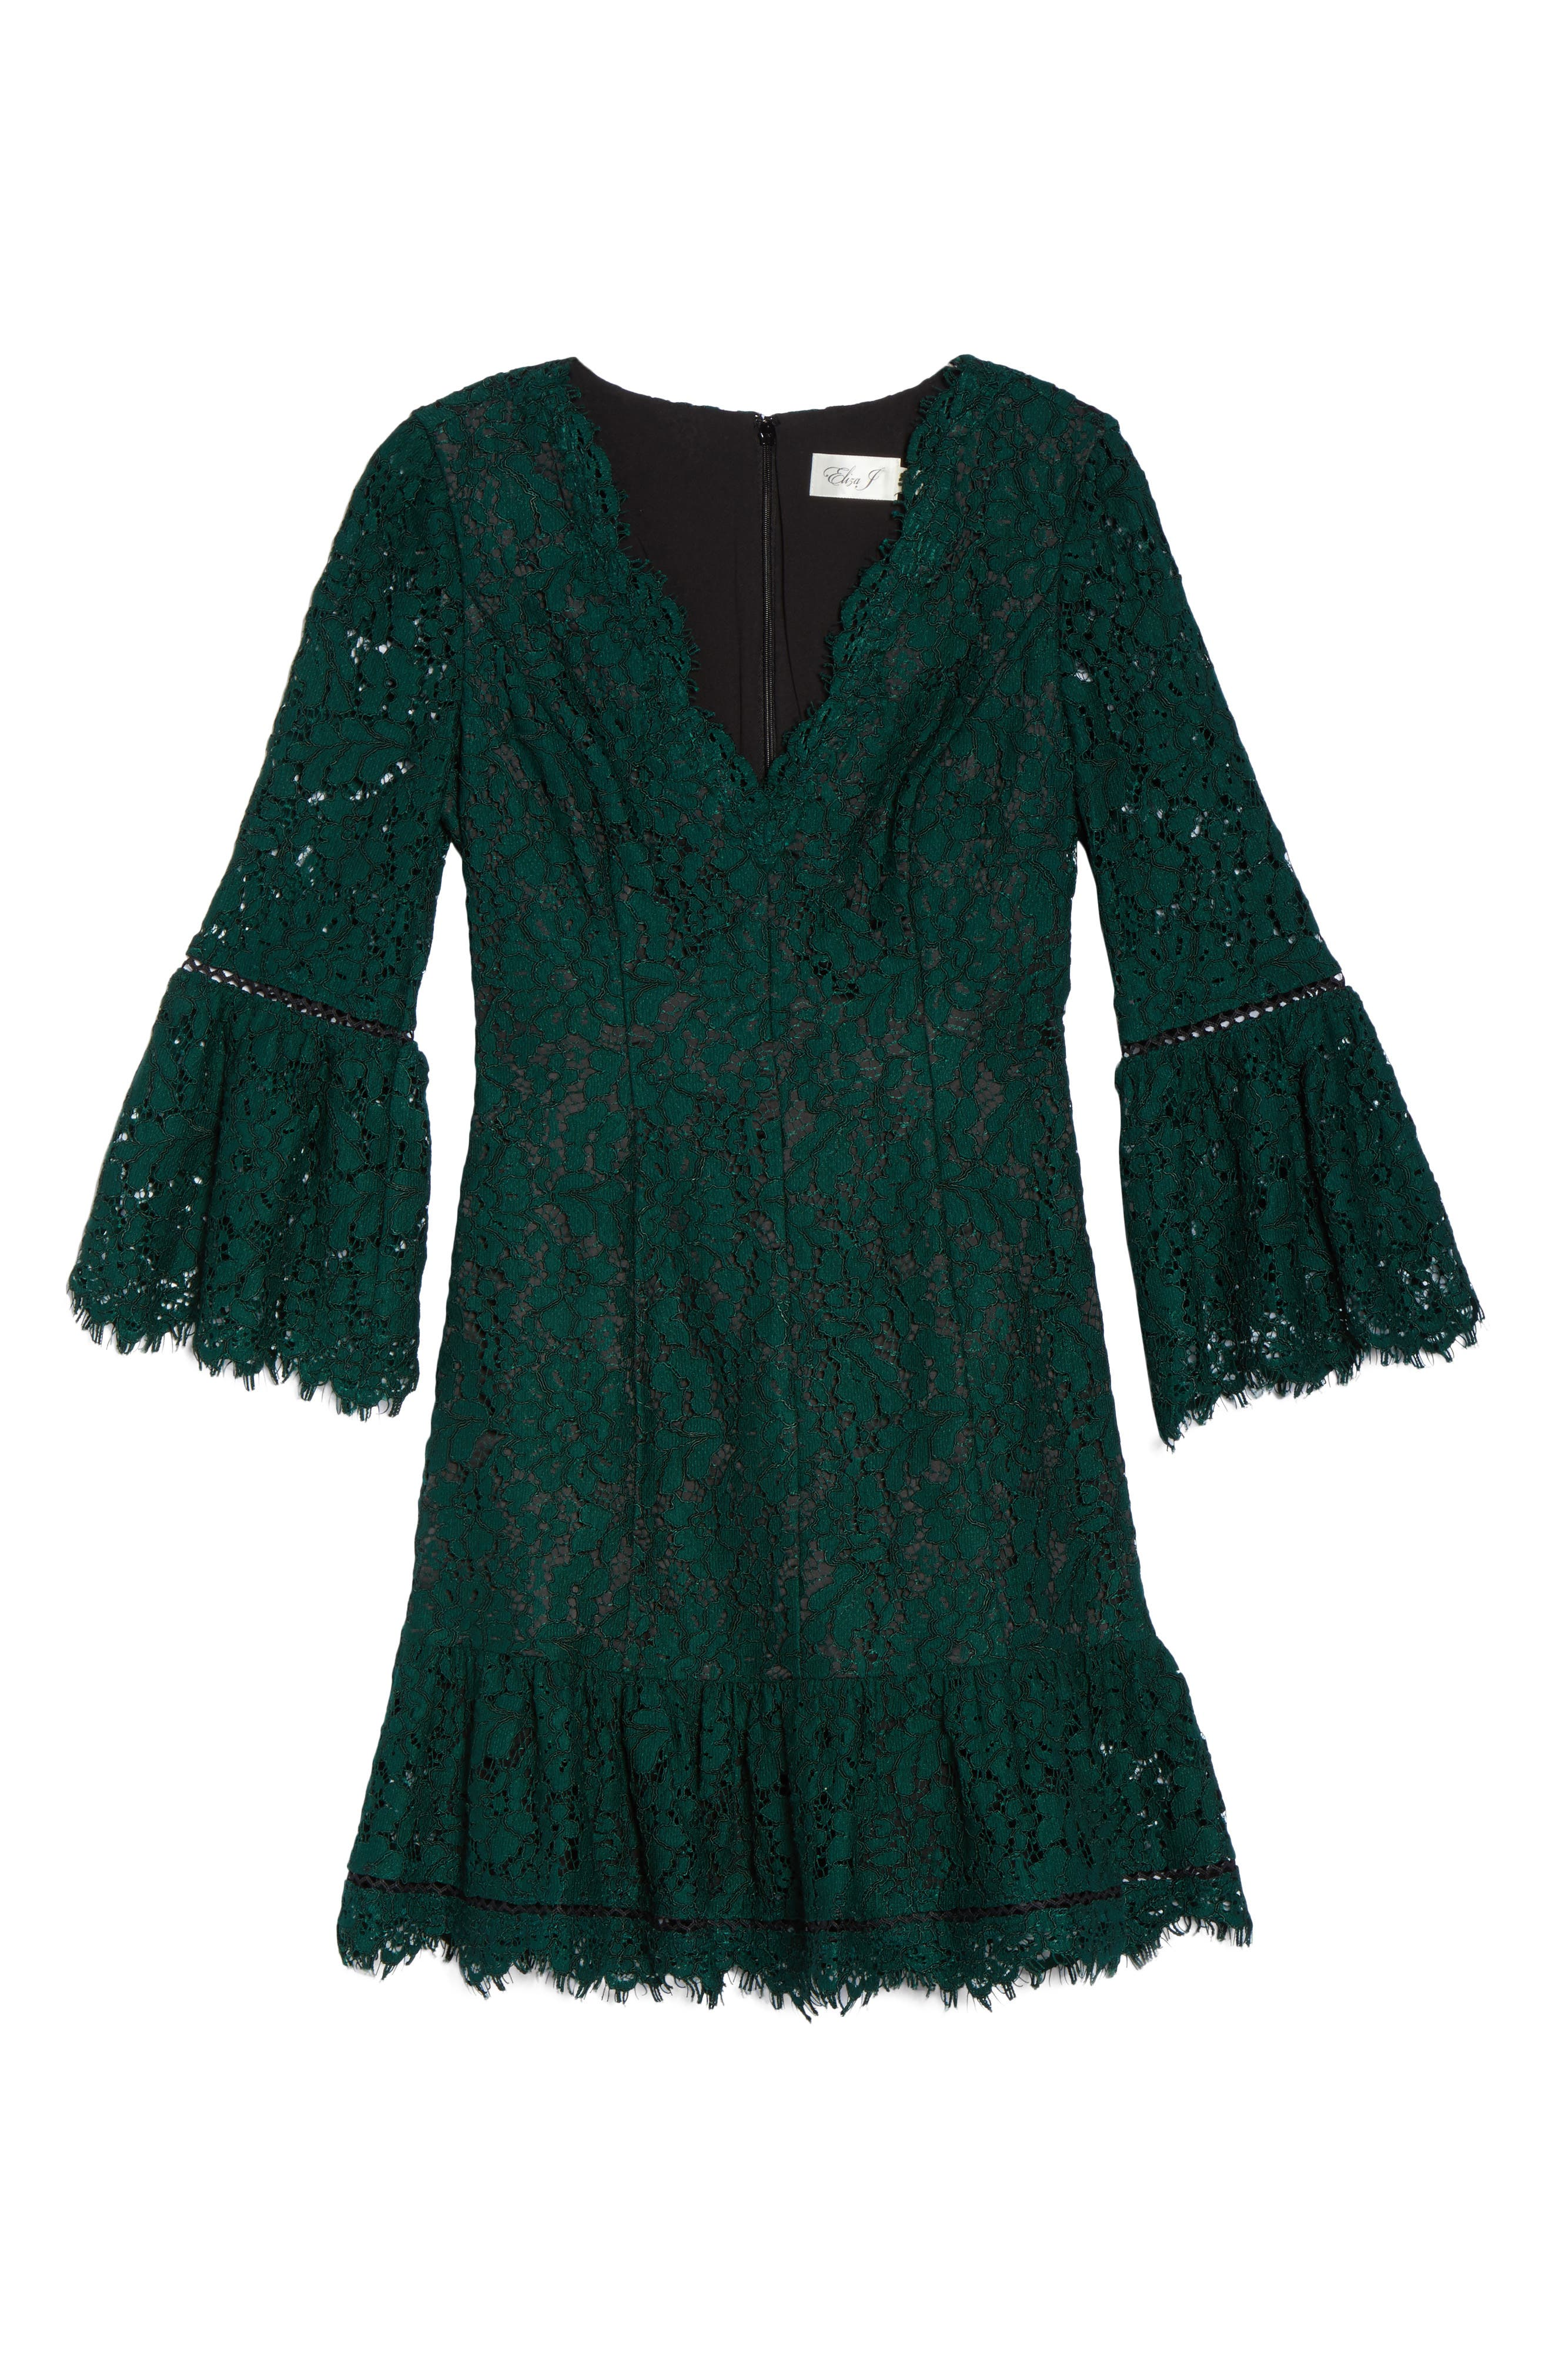 Bell Sleeve Lace Dress,                             Alternate thumbnail 6, color,                             Green/ Black